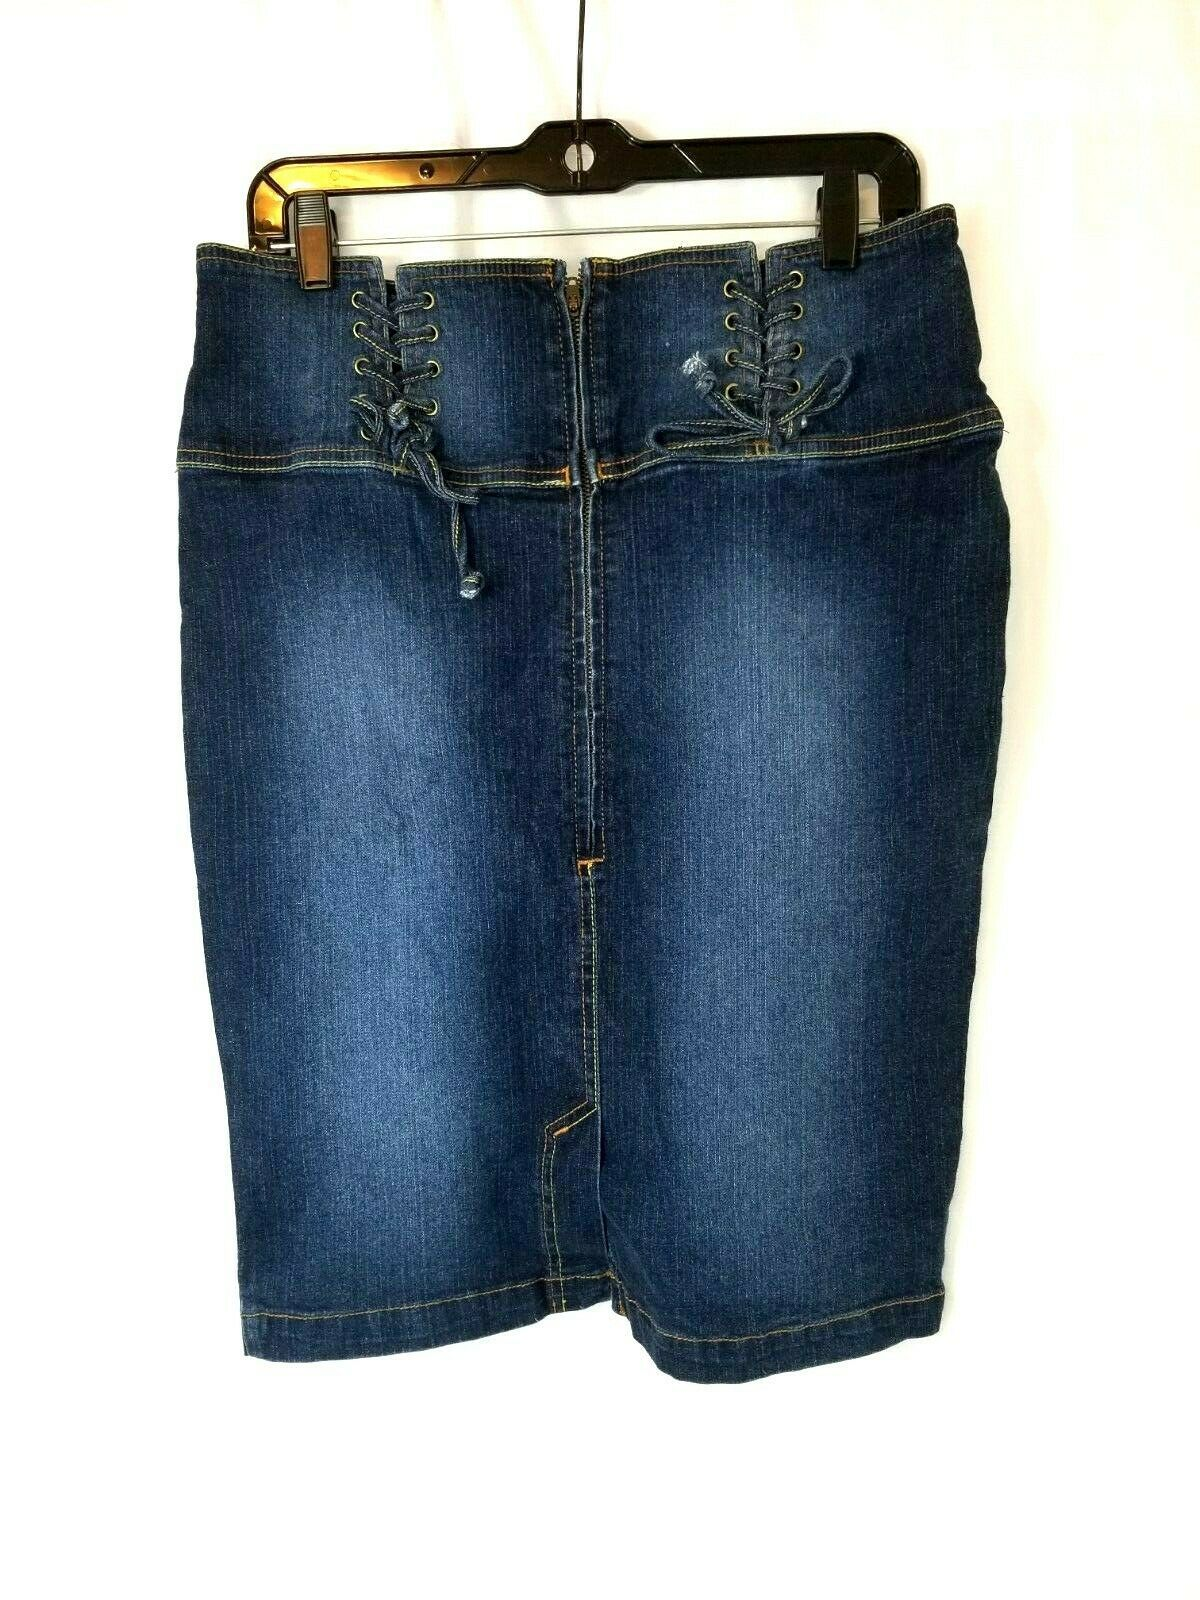 Primary image for Baby Phat Womens Blue Jean Skirt Size 11 Denim Dark Wash Half Zip Laced up Top